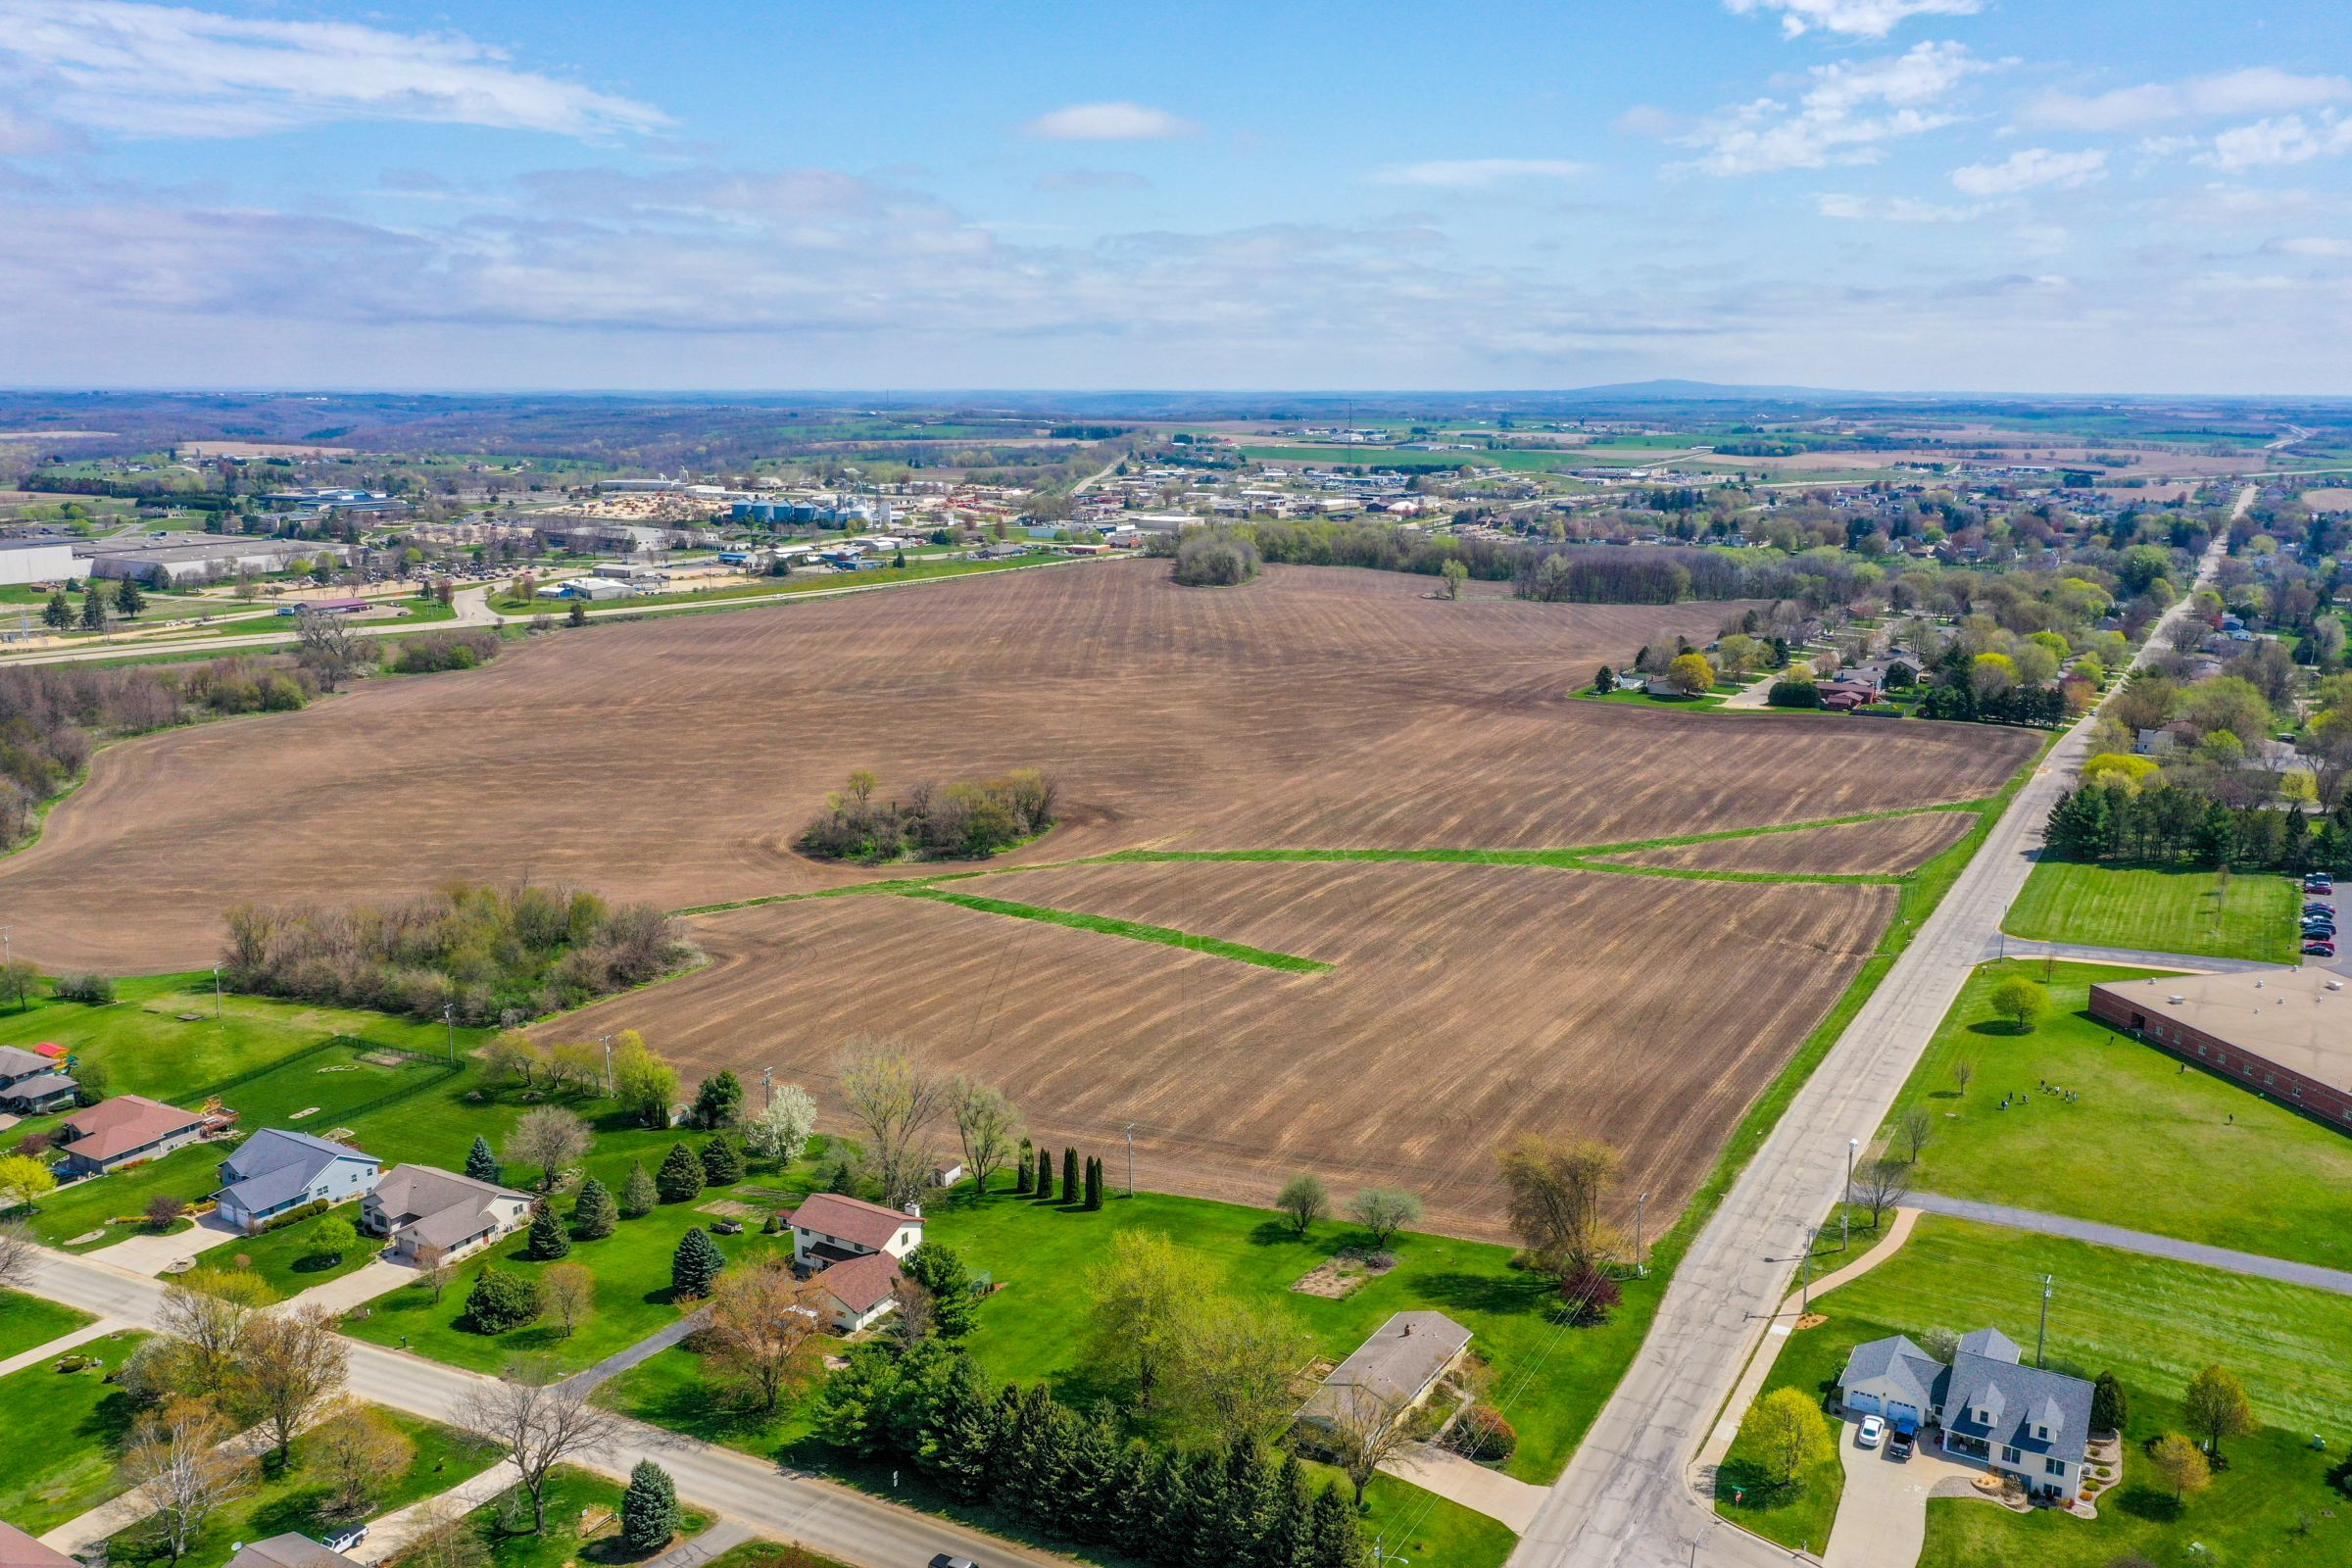 development-land-commercial-iowa-county-wisconsin-152-acres-listing-number-15474-1-2021-05-18-161415.jpg